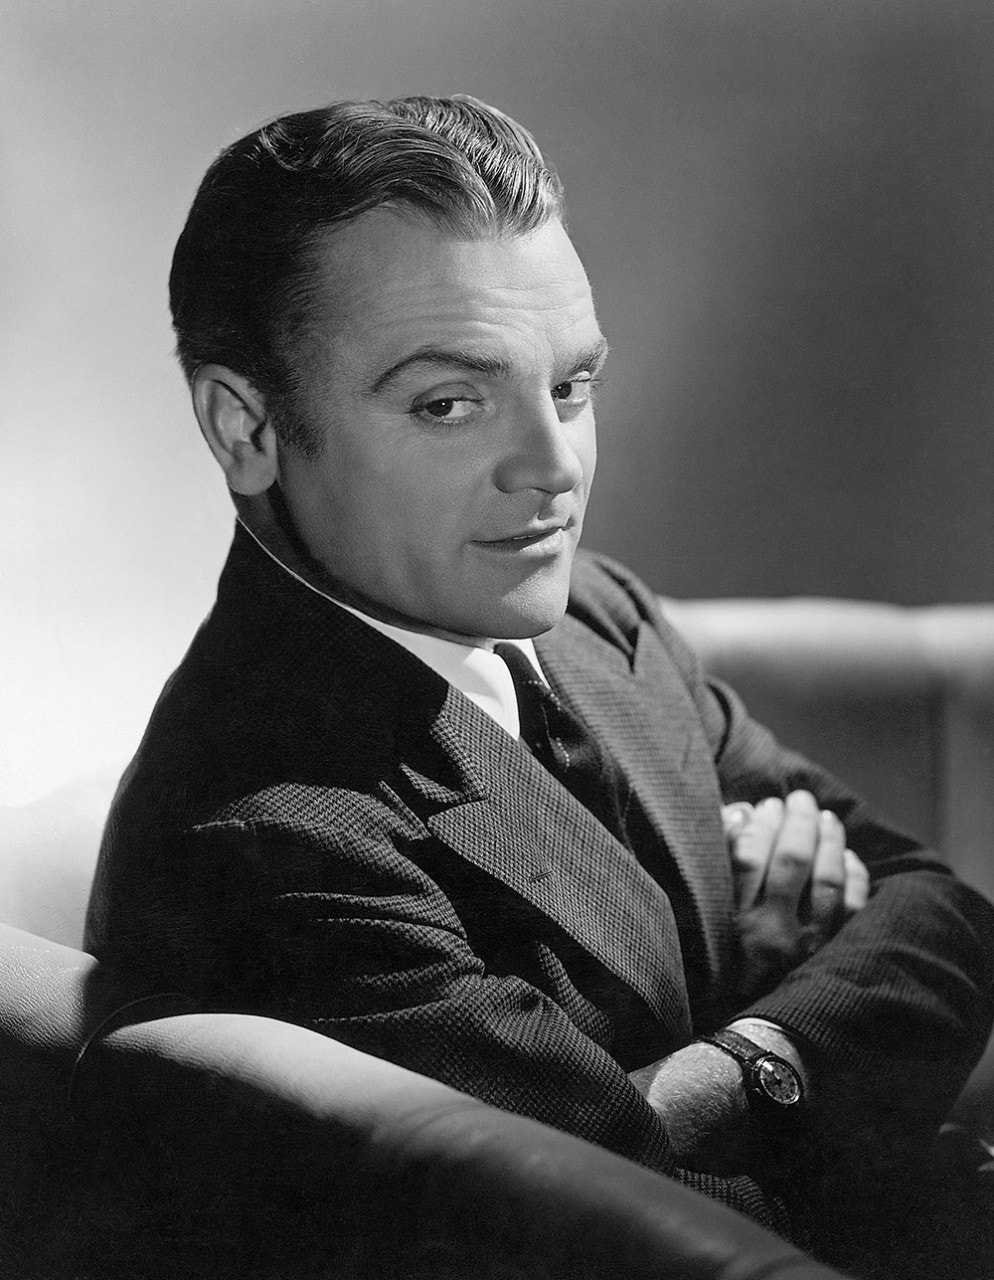 Hollywood 'gangster' James Cagney preferred life on a farm over Hollywood